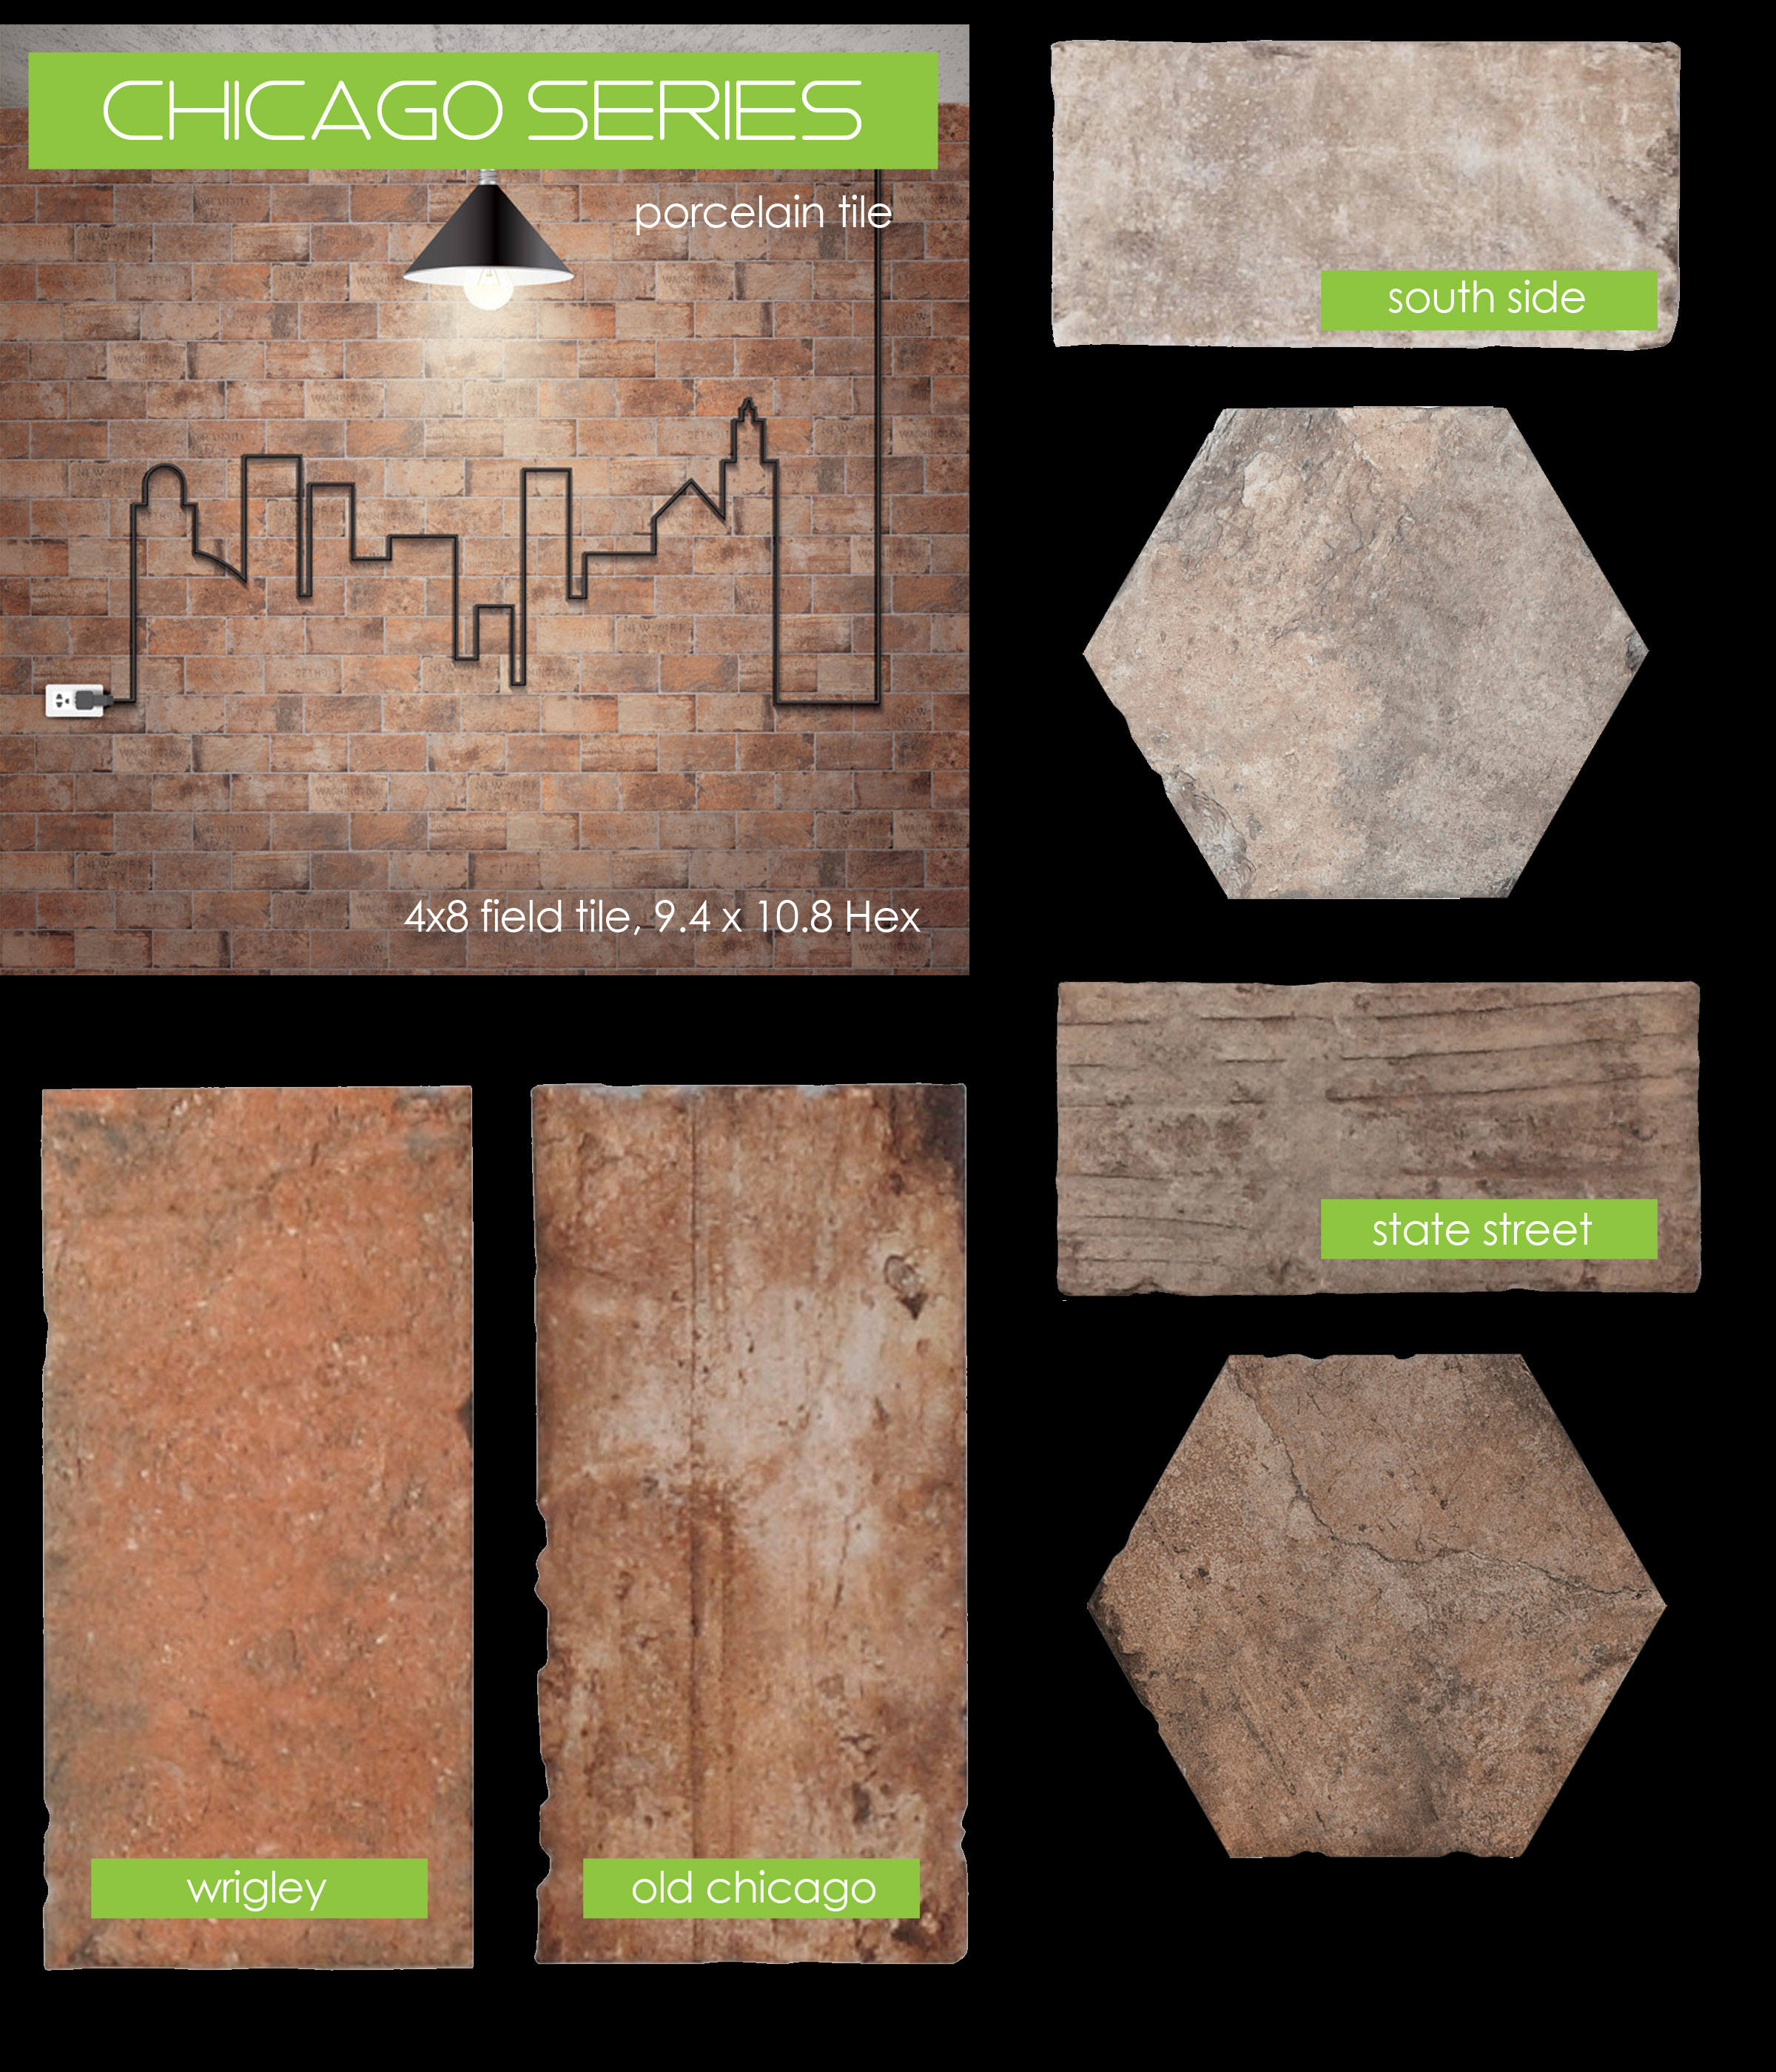 SERENISSIMA CHICAGO brick tile pavers south side wrigley old 4x8 field tile hexagon hex rugged rustic vintage porcelain interior backsplash wall floor